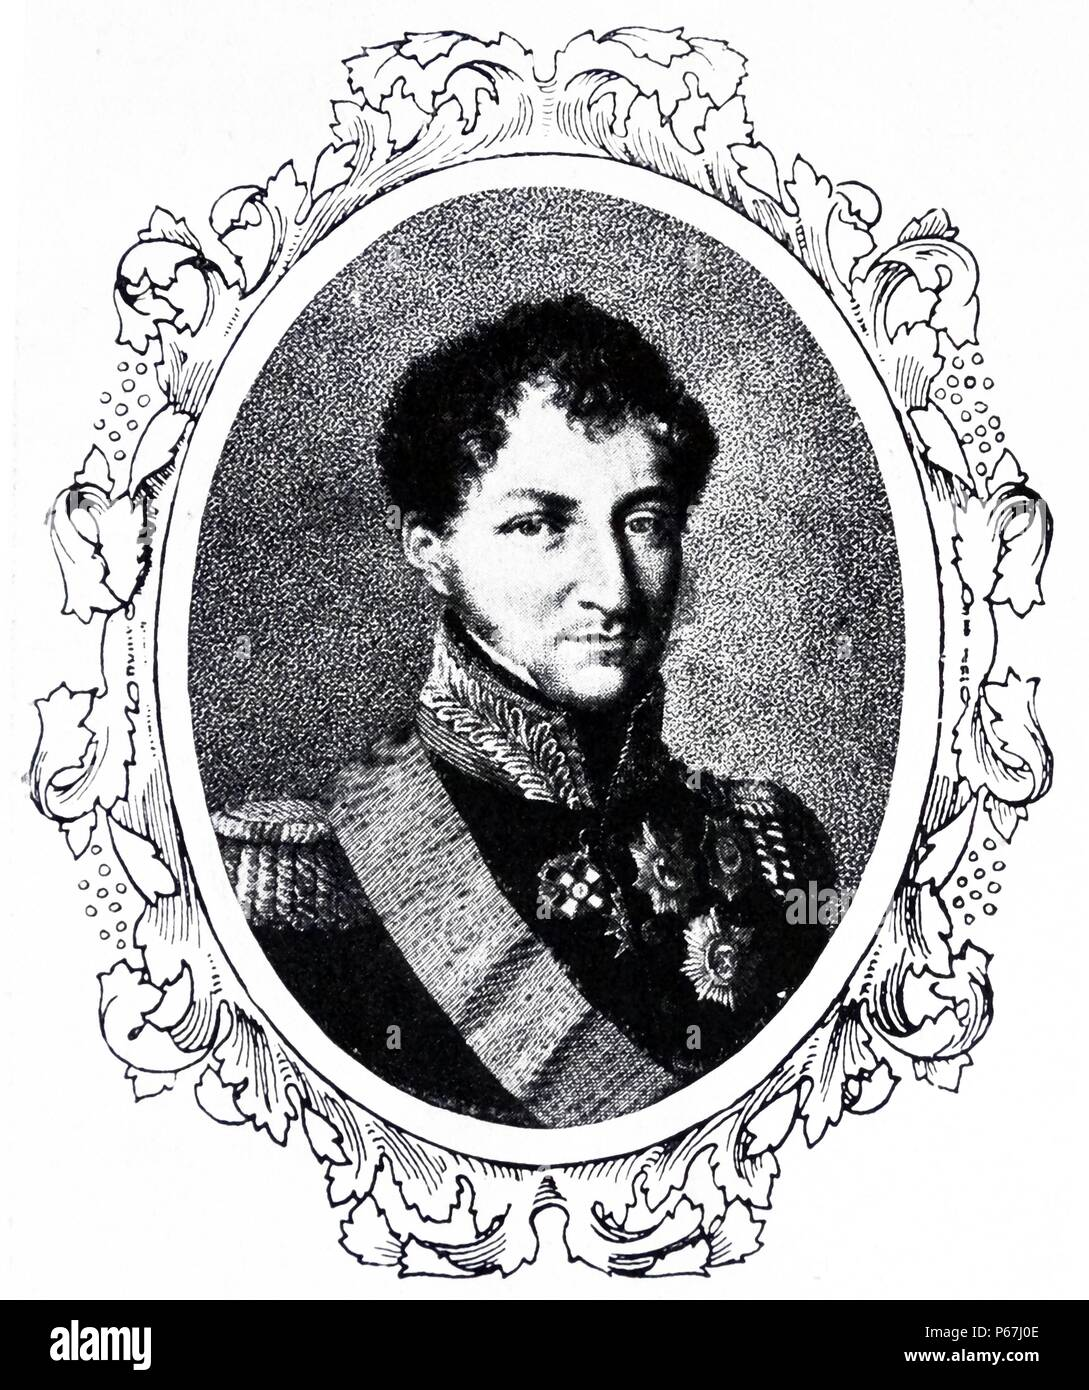 portrait of Ernest I;   Duke of Saxe-Coburg and Gotha (1784 – 29 January 1844);   father of Prince Albert the consort of Queen Victoria - Stock Image